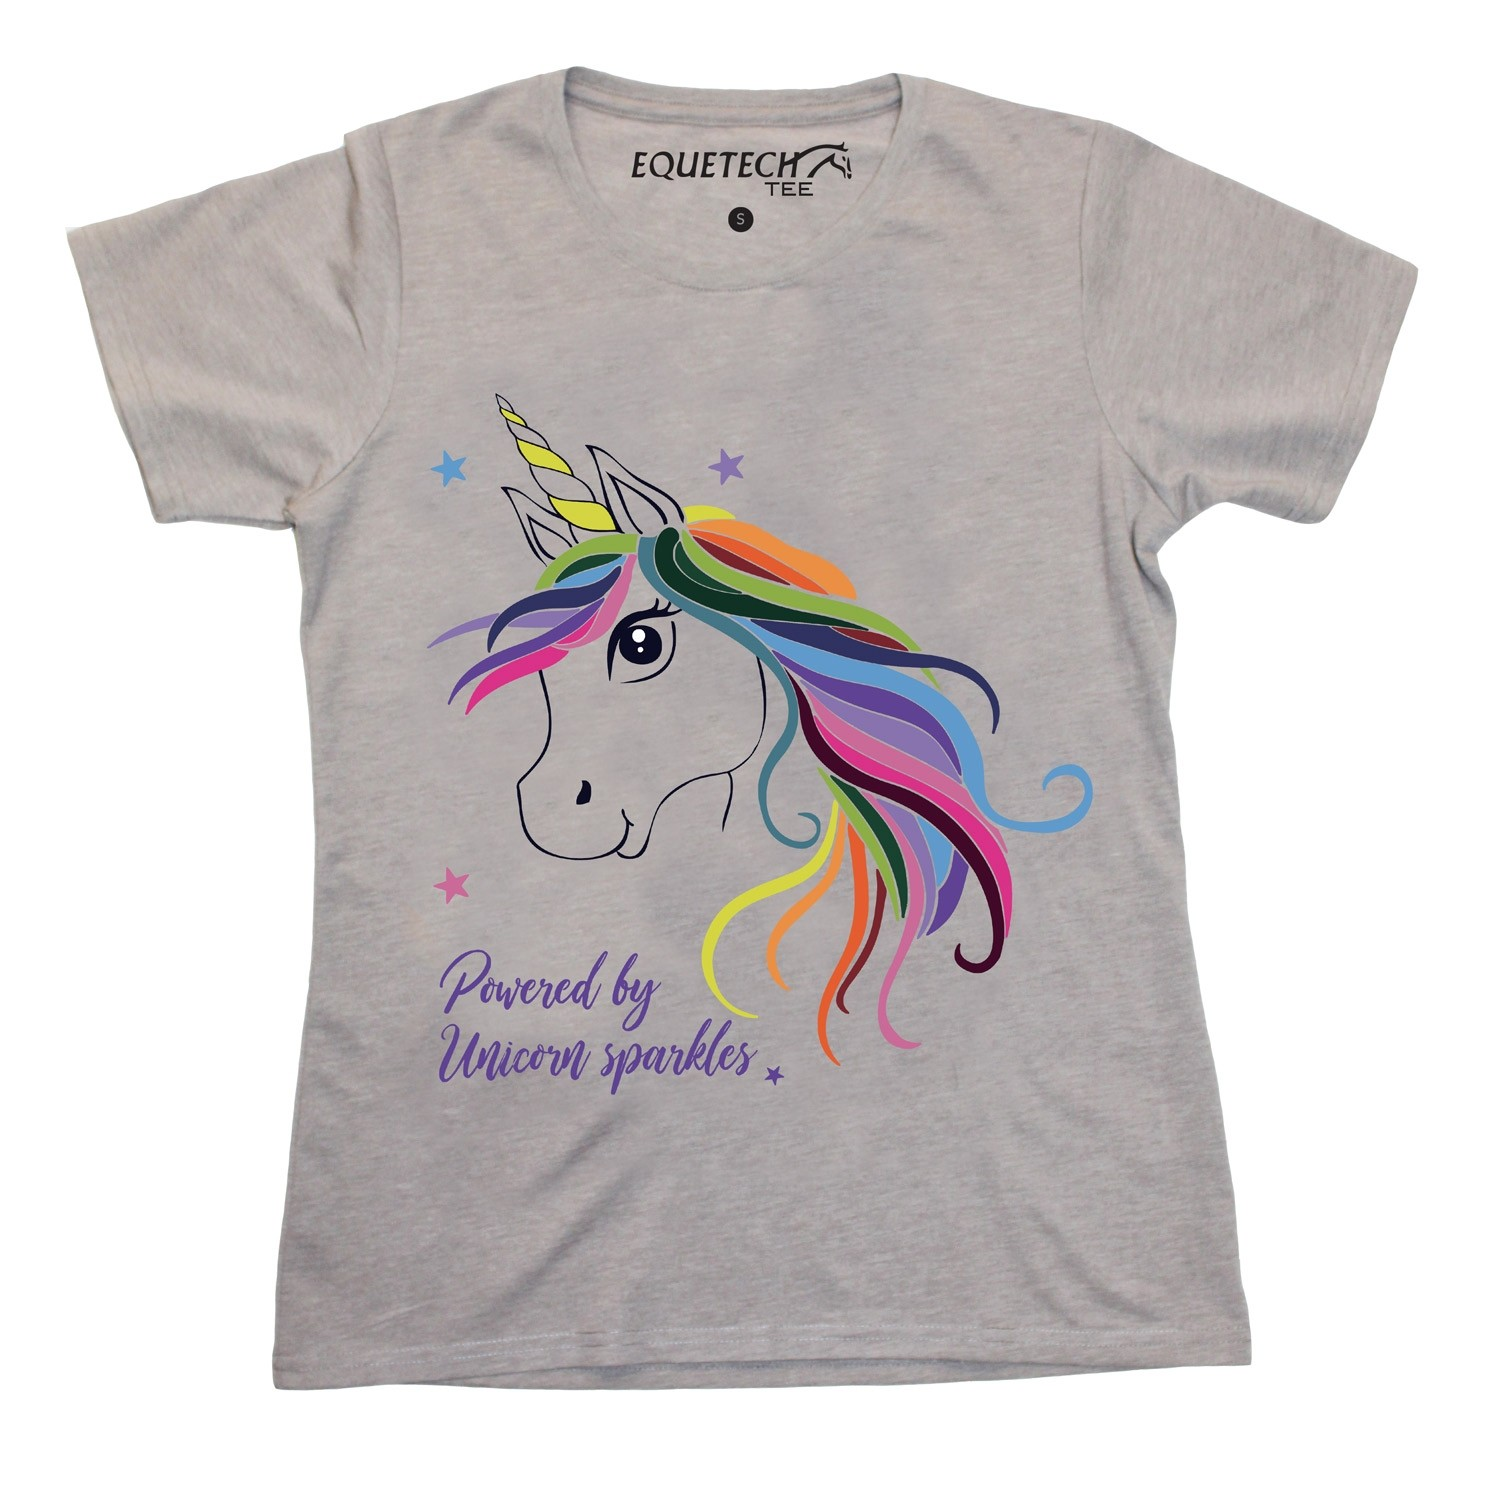 Equetech Childs Unicorn Tee  - Thomas Irving's equestrian and accessories store  Equetech Childs Unicorn Tee